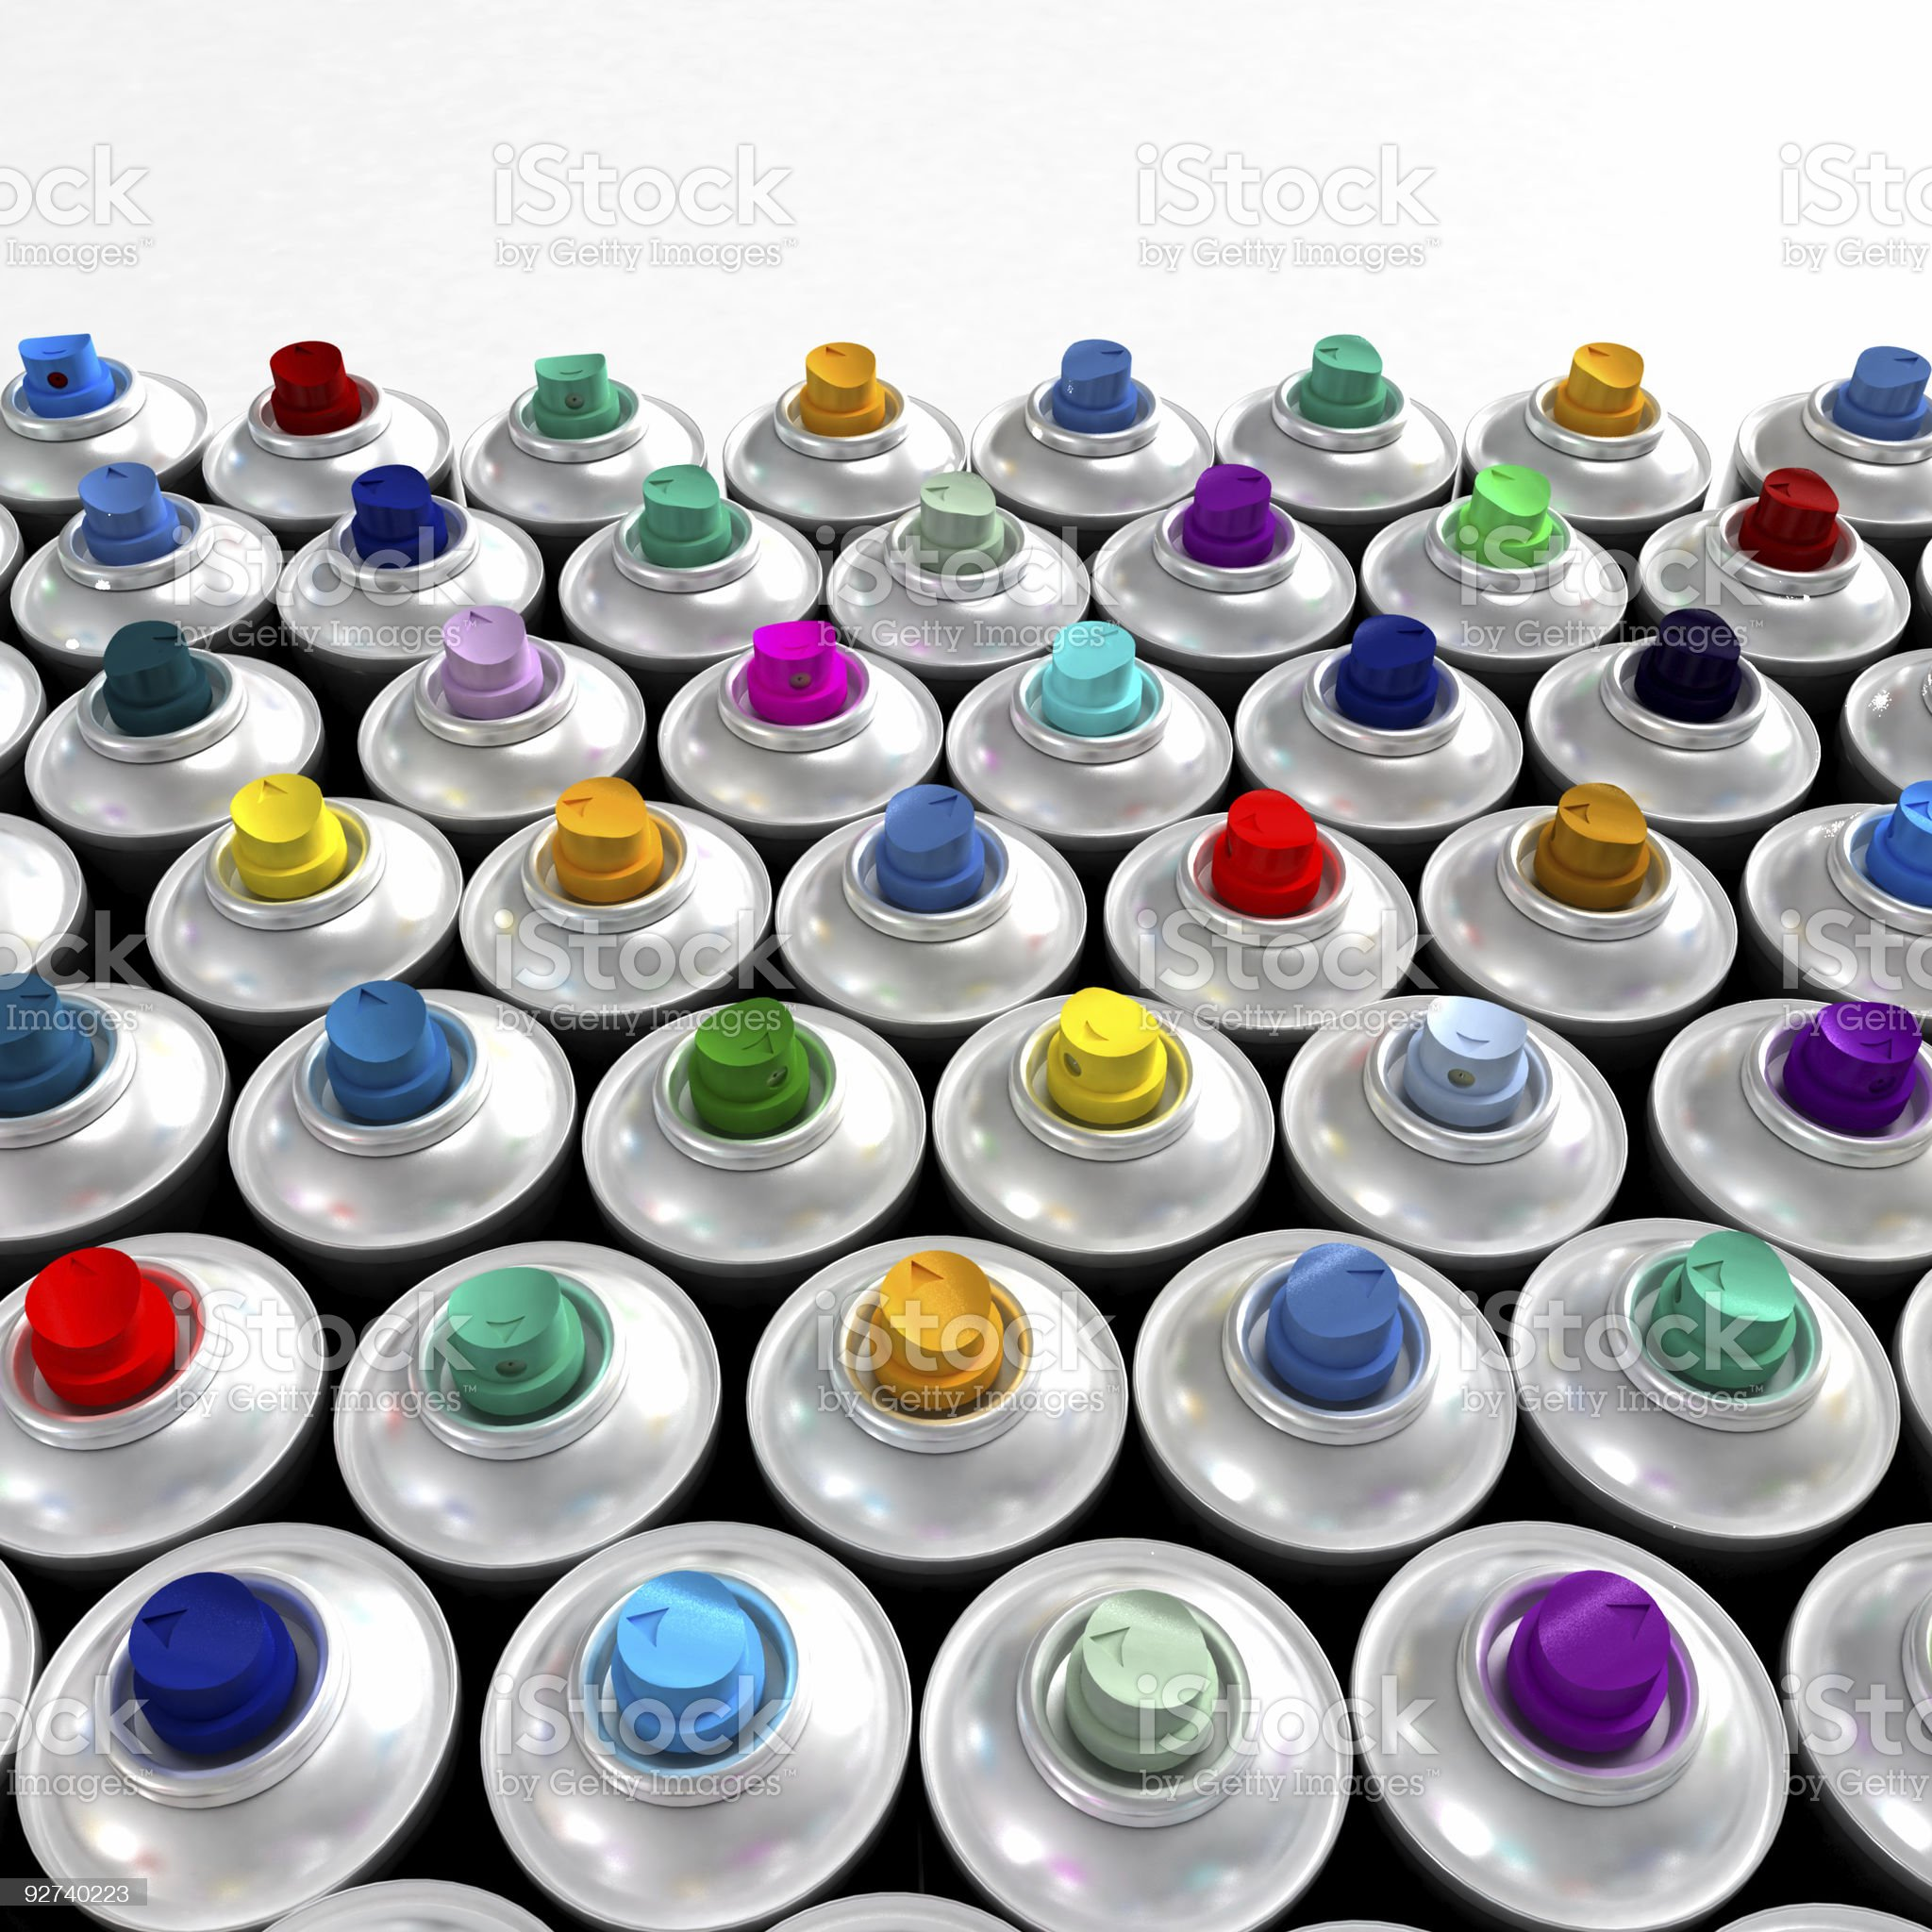 colorful nozzles from aerosol cans royalty-free stock photo